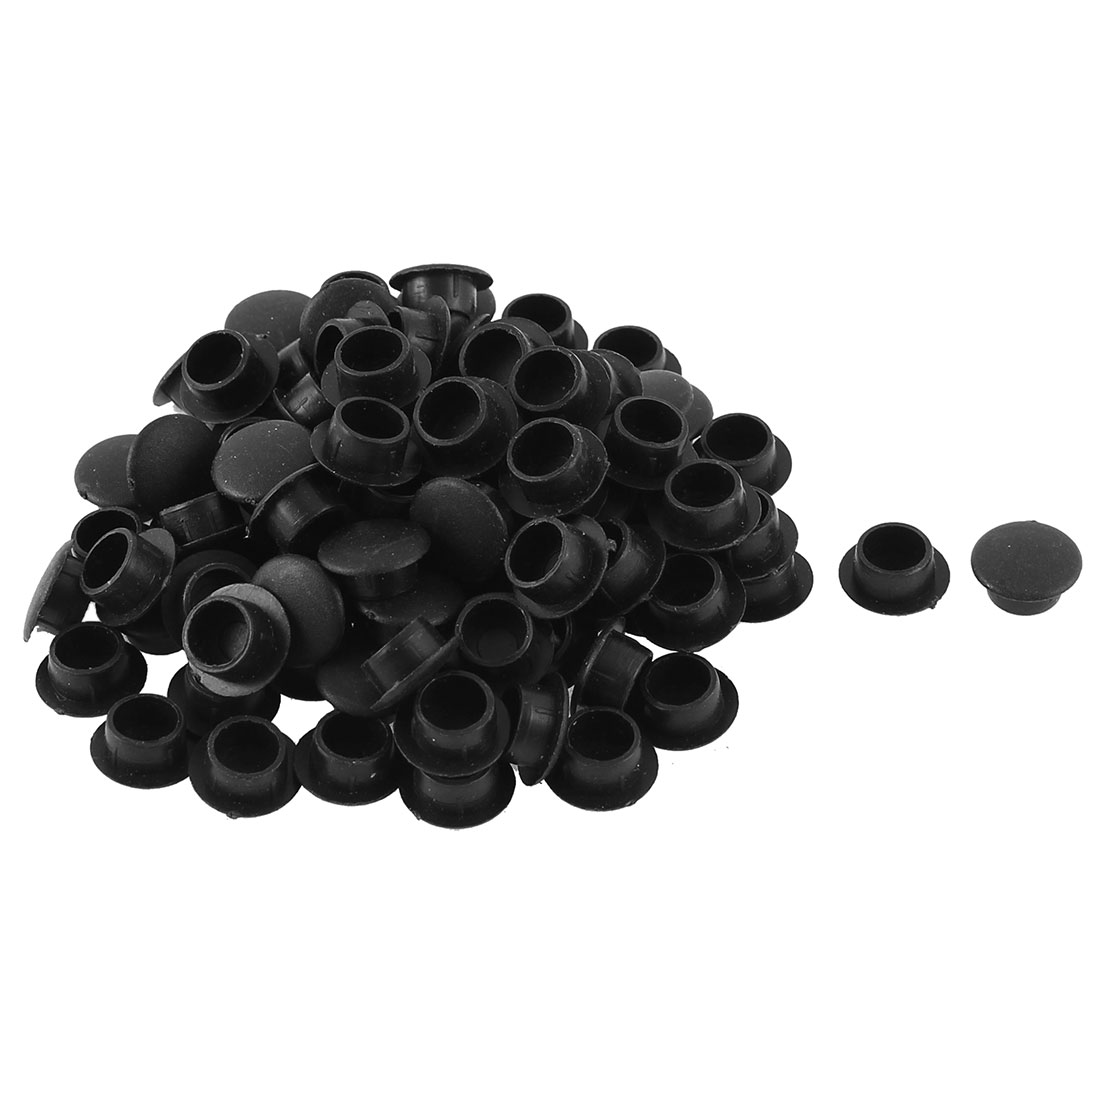 Plastic Furniture Cabinet Wardrobe Legs Hole Cover Tube Insert Black 100pcs